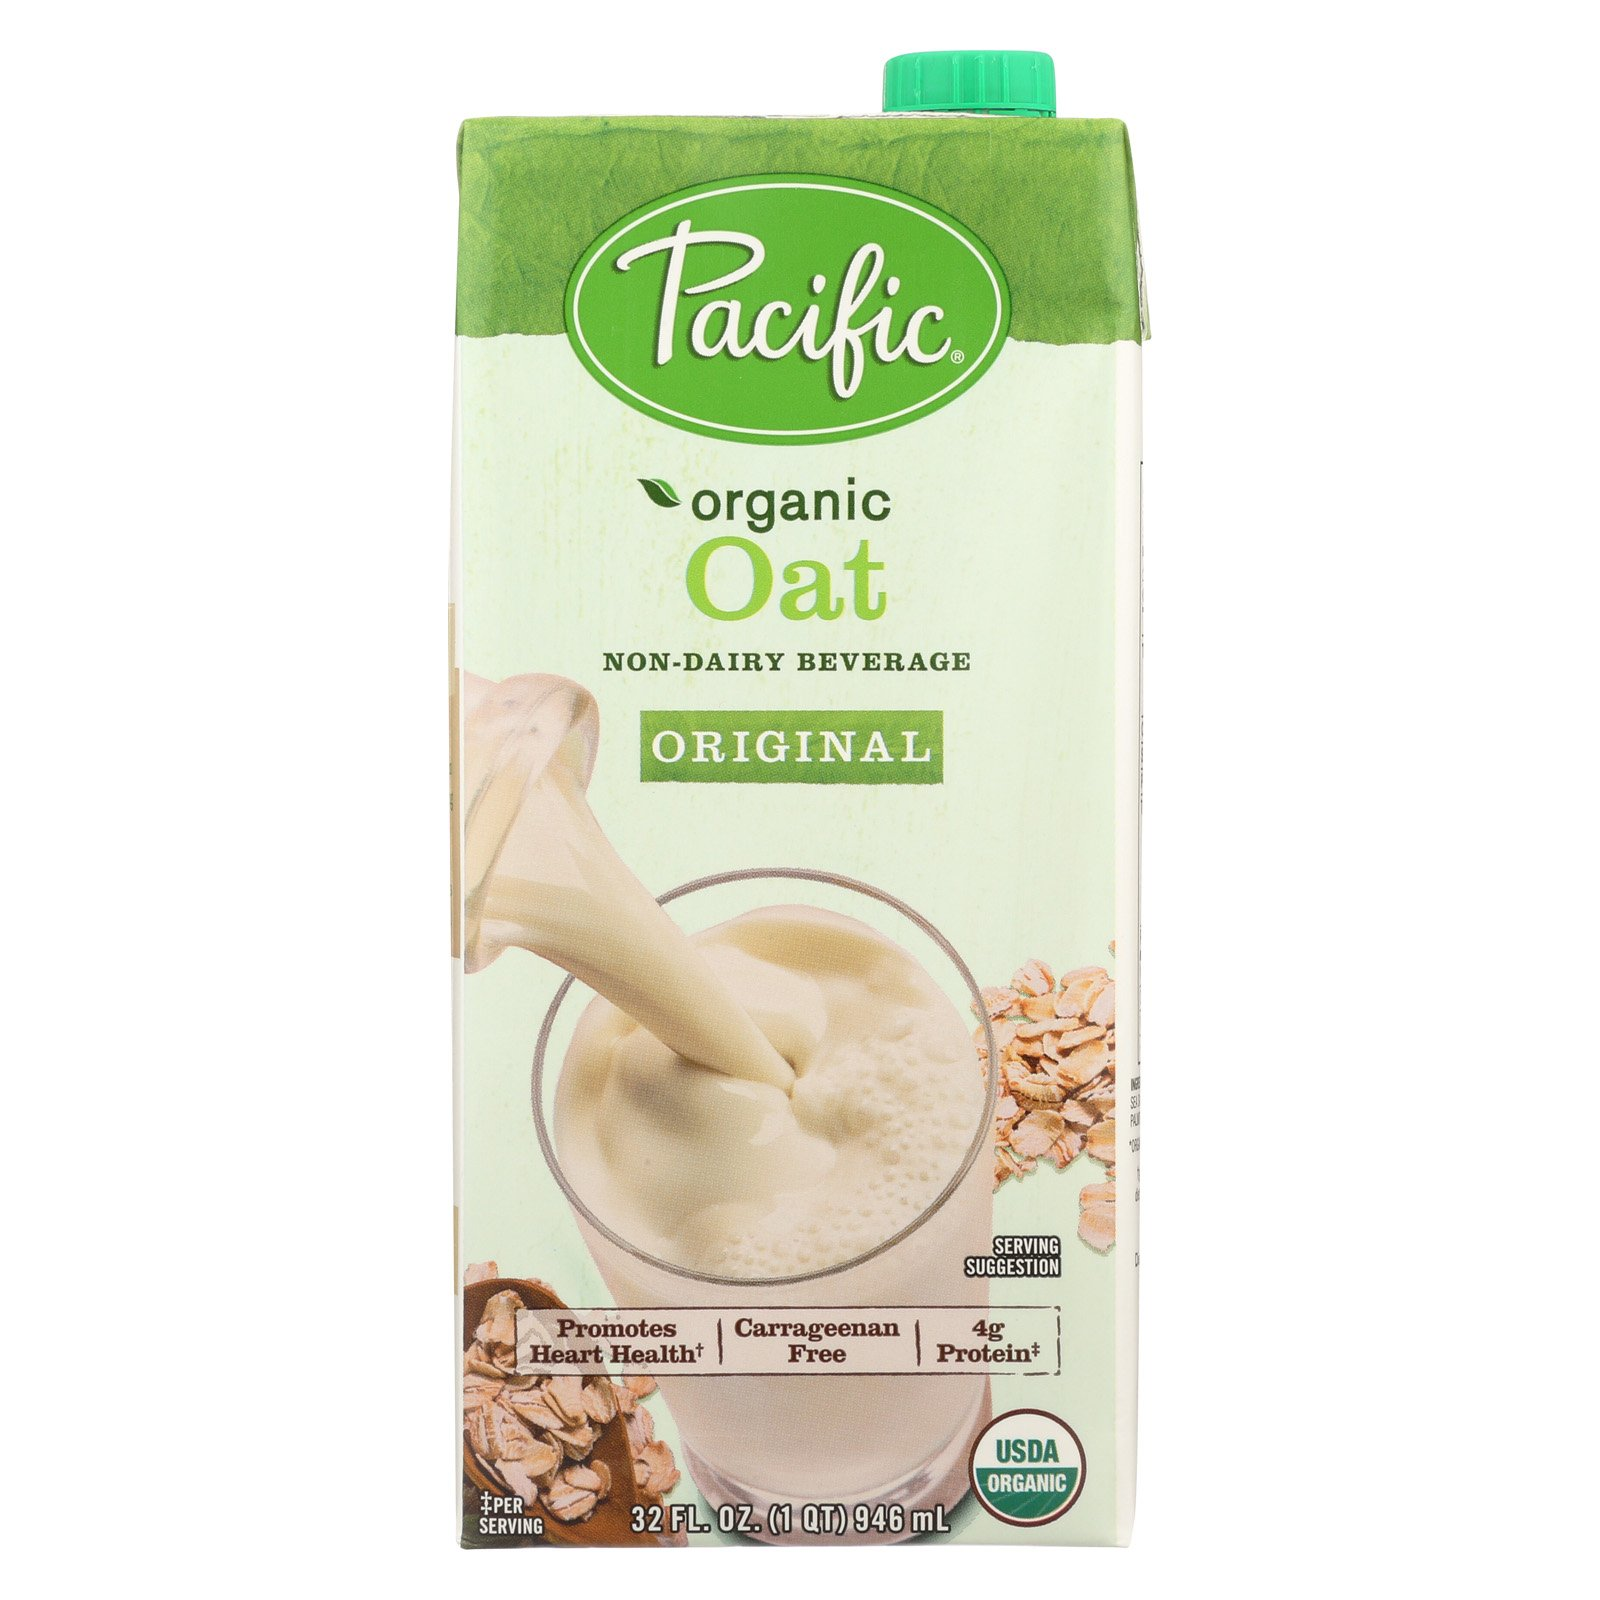 Pacific Natural Foods Oat Original - Organic - Case of 12 - 32 Fl oz. by Pacific Natural Foods